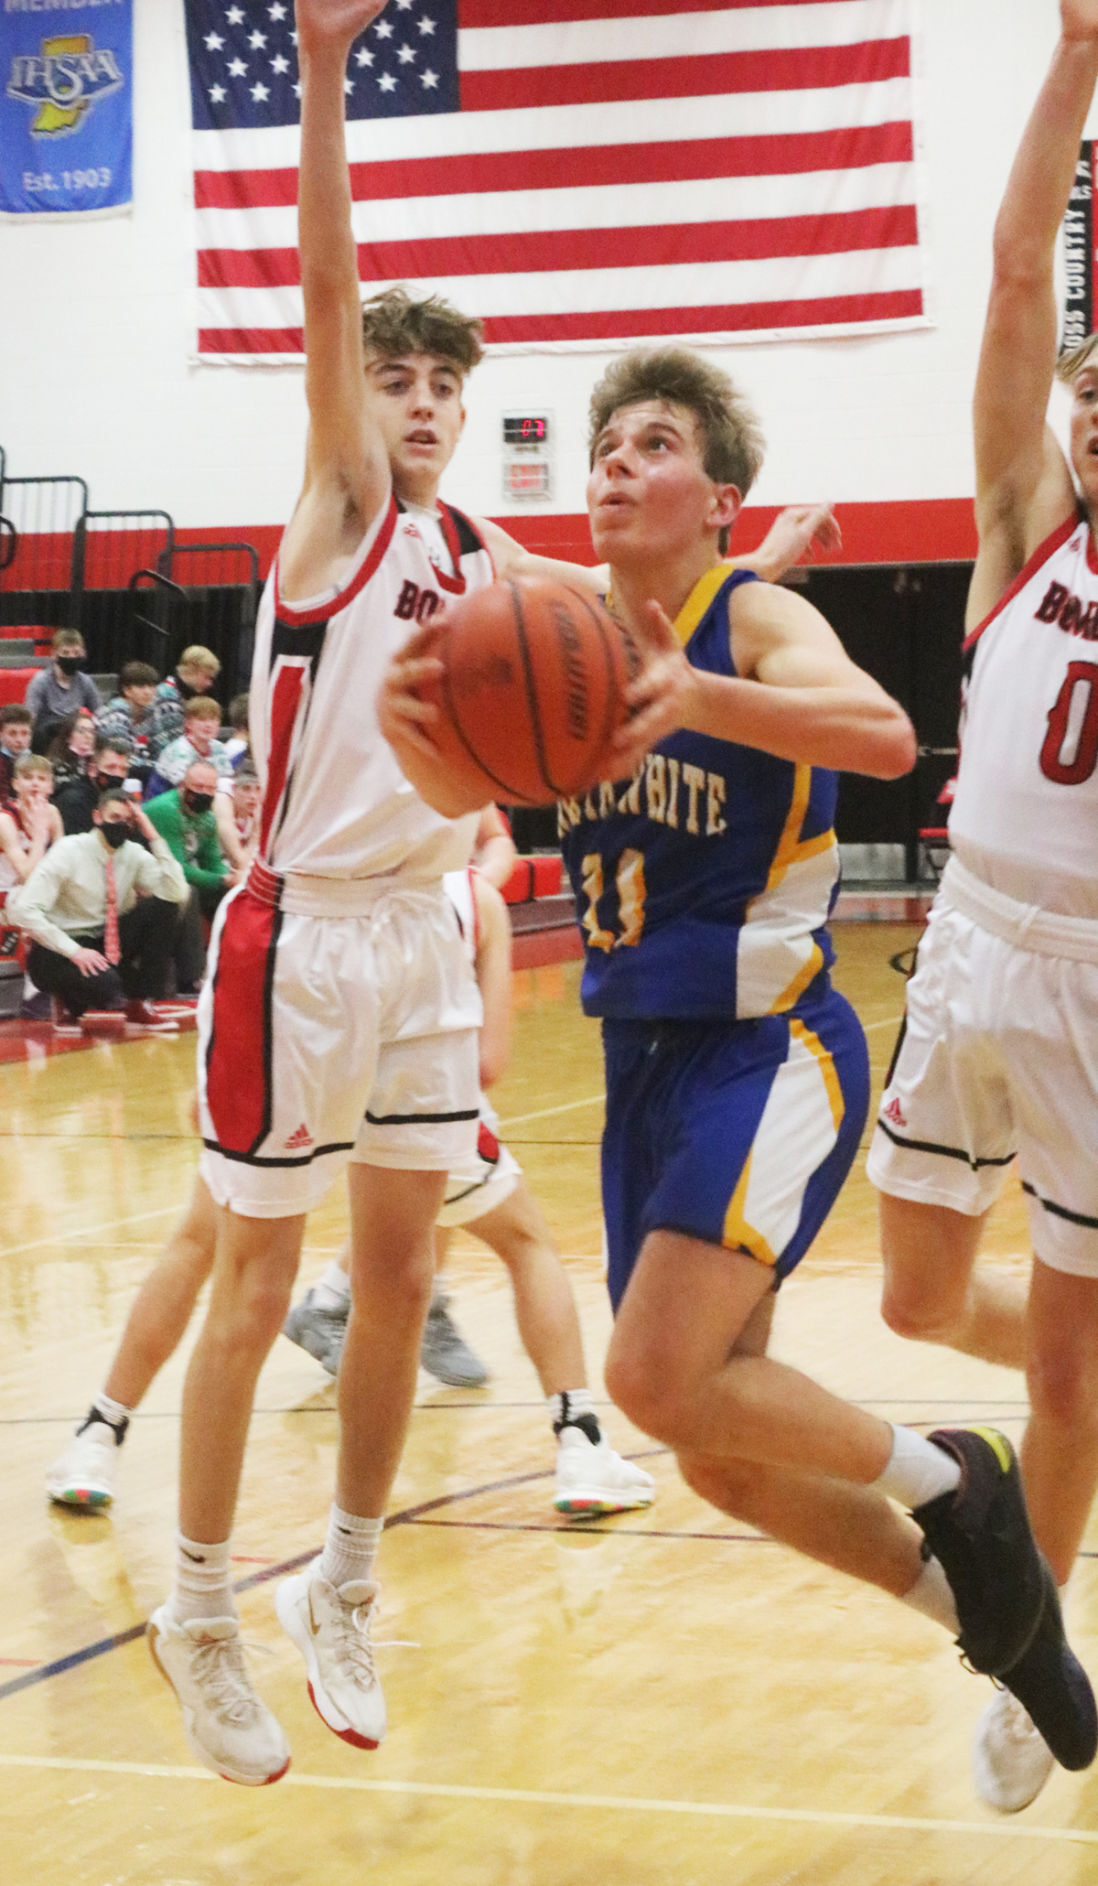 Pogue leads Vikes to victory